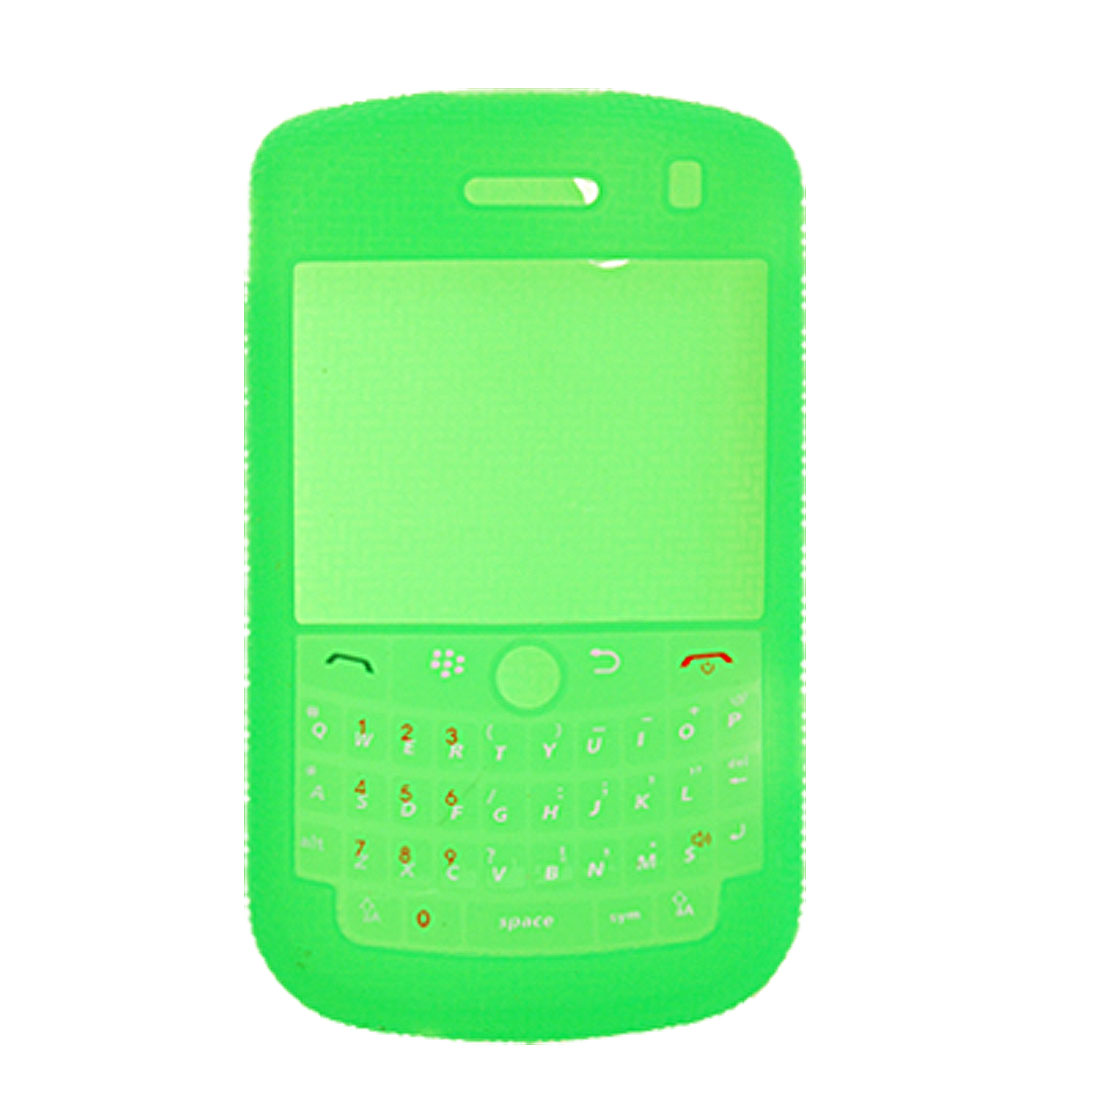 Green Silicone Case Nonslip Protective Skin for Blackberry 8900 9300